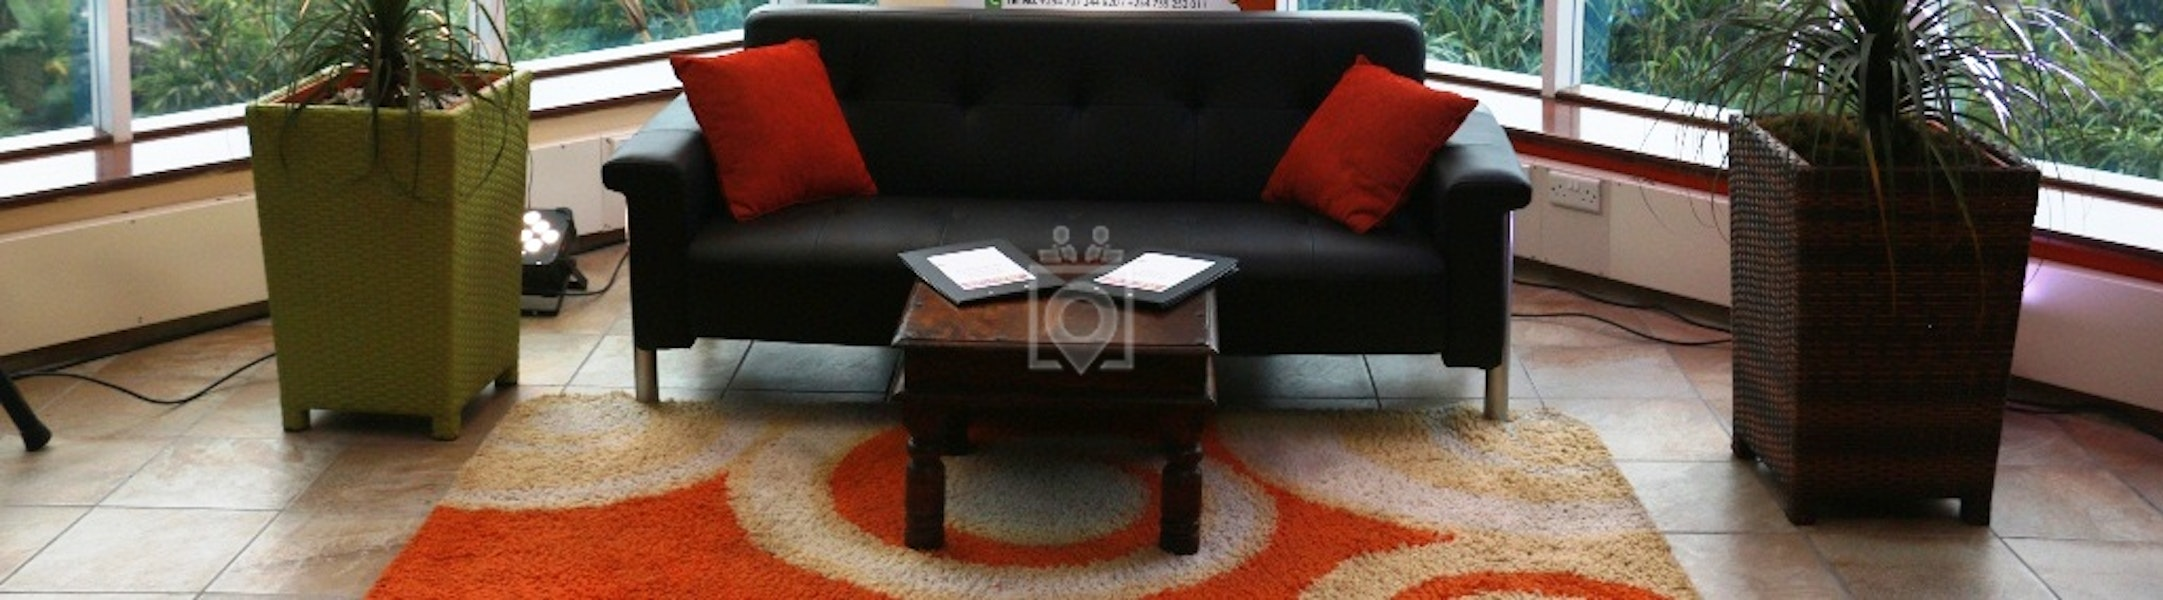 The Hive, Nairobi - Read Reviews & Book Online